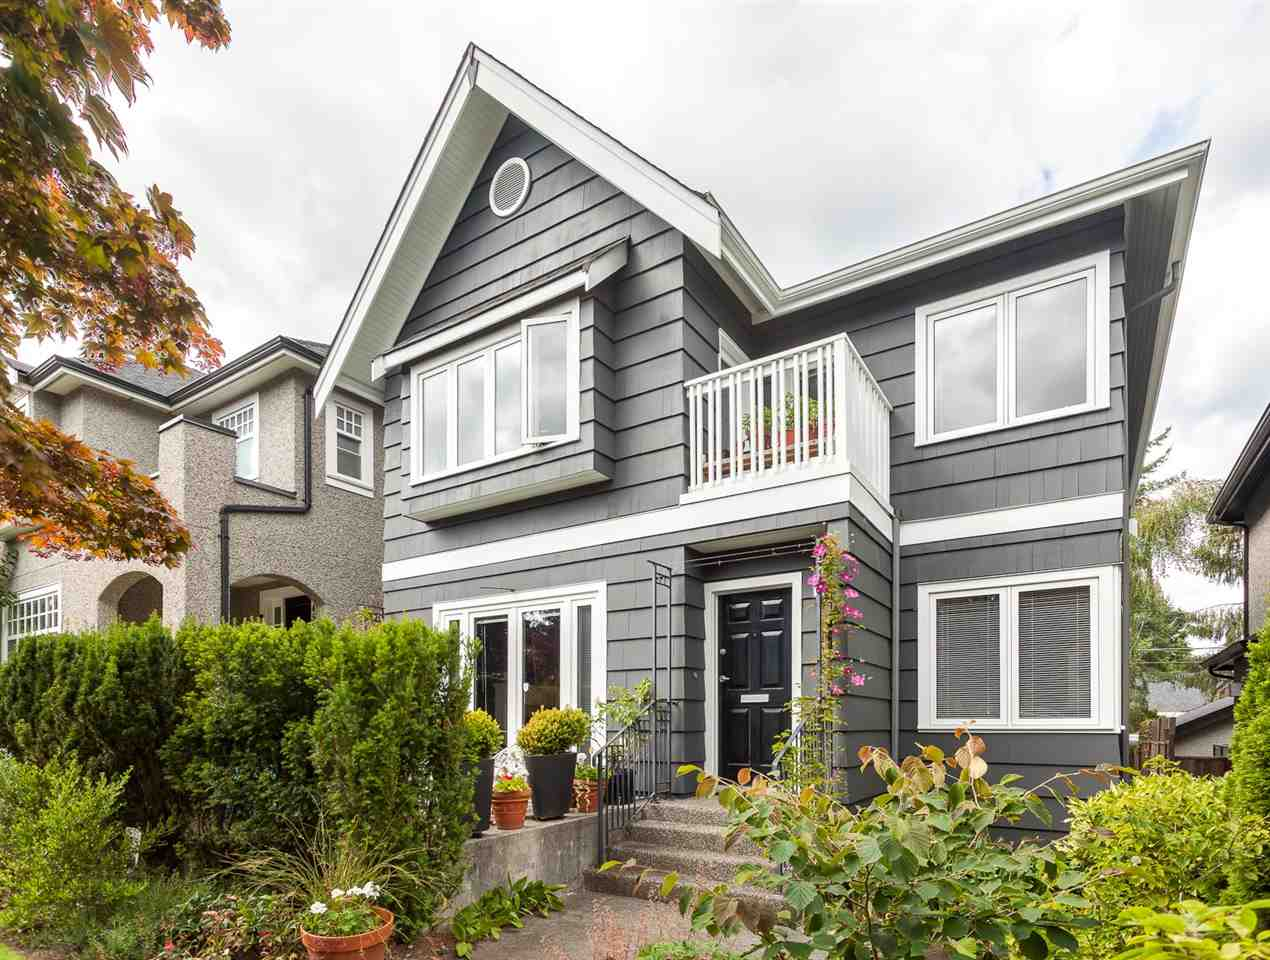 Main Photo: 4559 W 12TH Avenue in Vancouver: Point Grey House for sale (Vancouver West)  : MLS® # R2110055